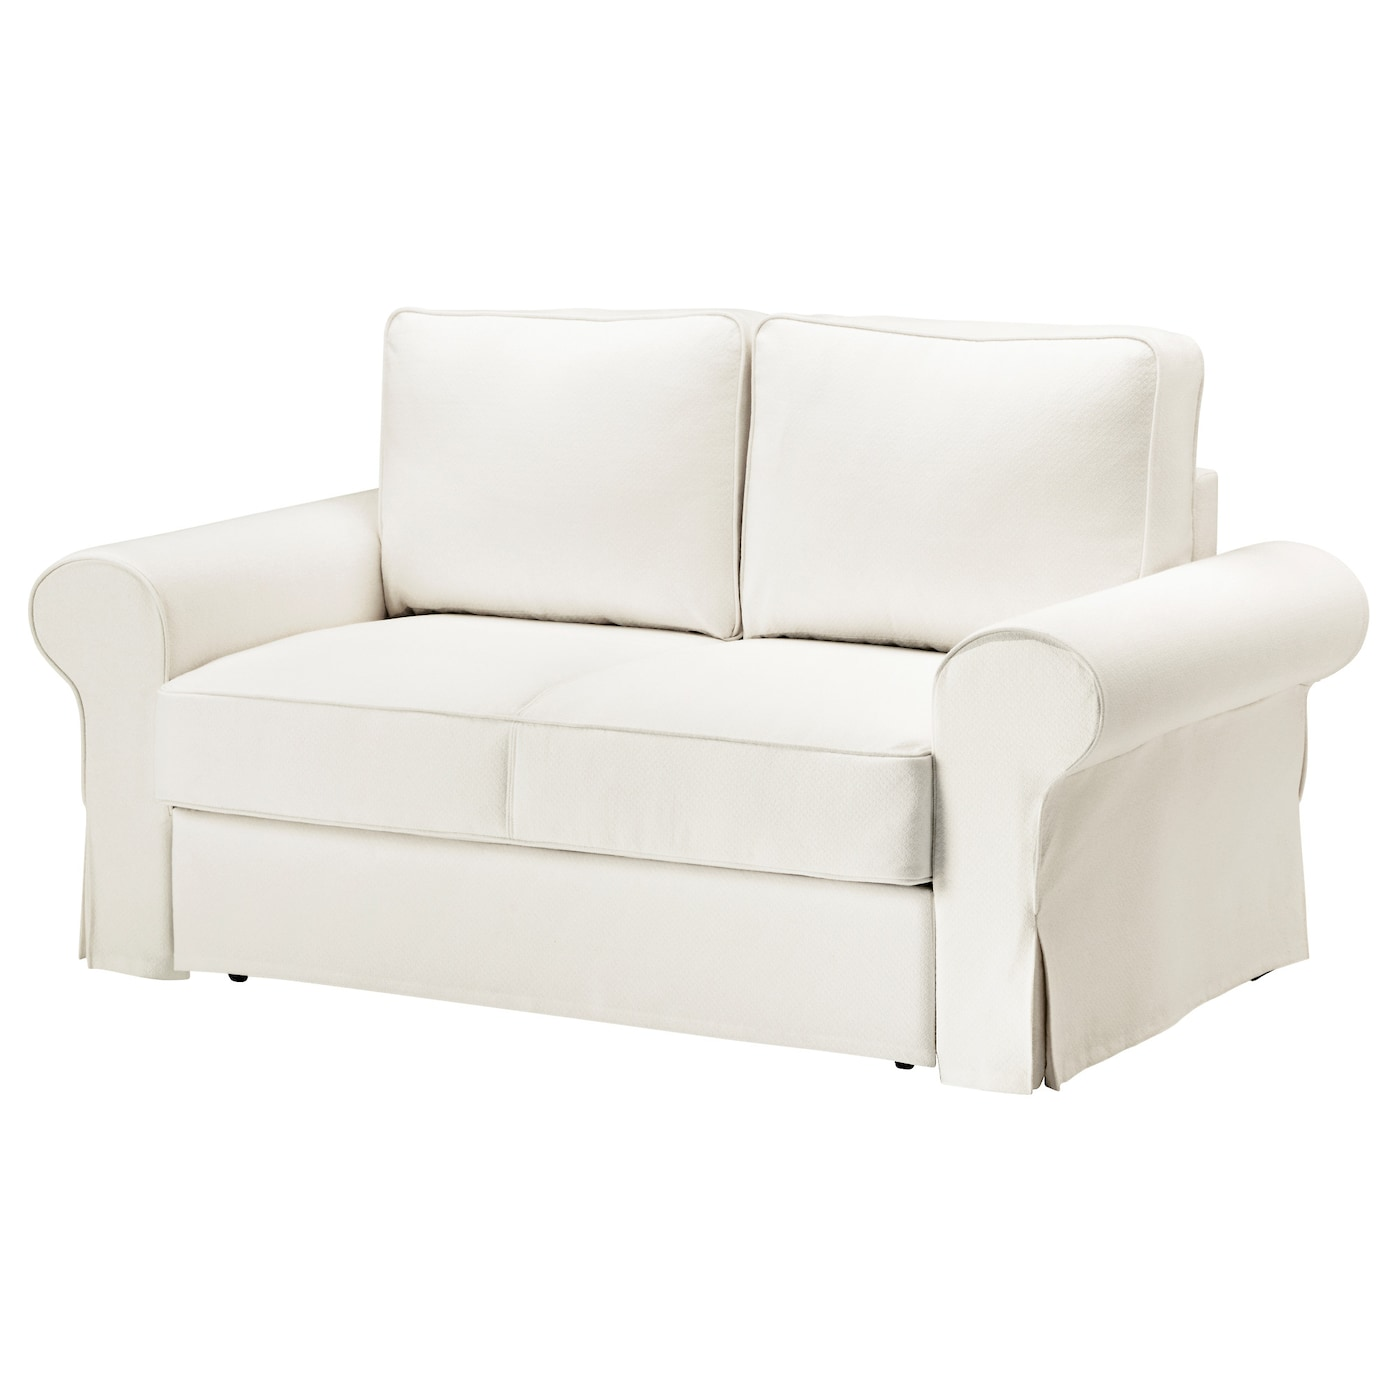 Backabro sof cama 2 plazas hylte blanco ikea for Sillones cama de dos plazas